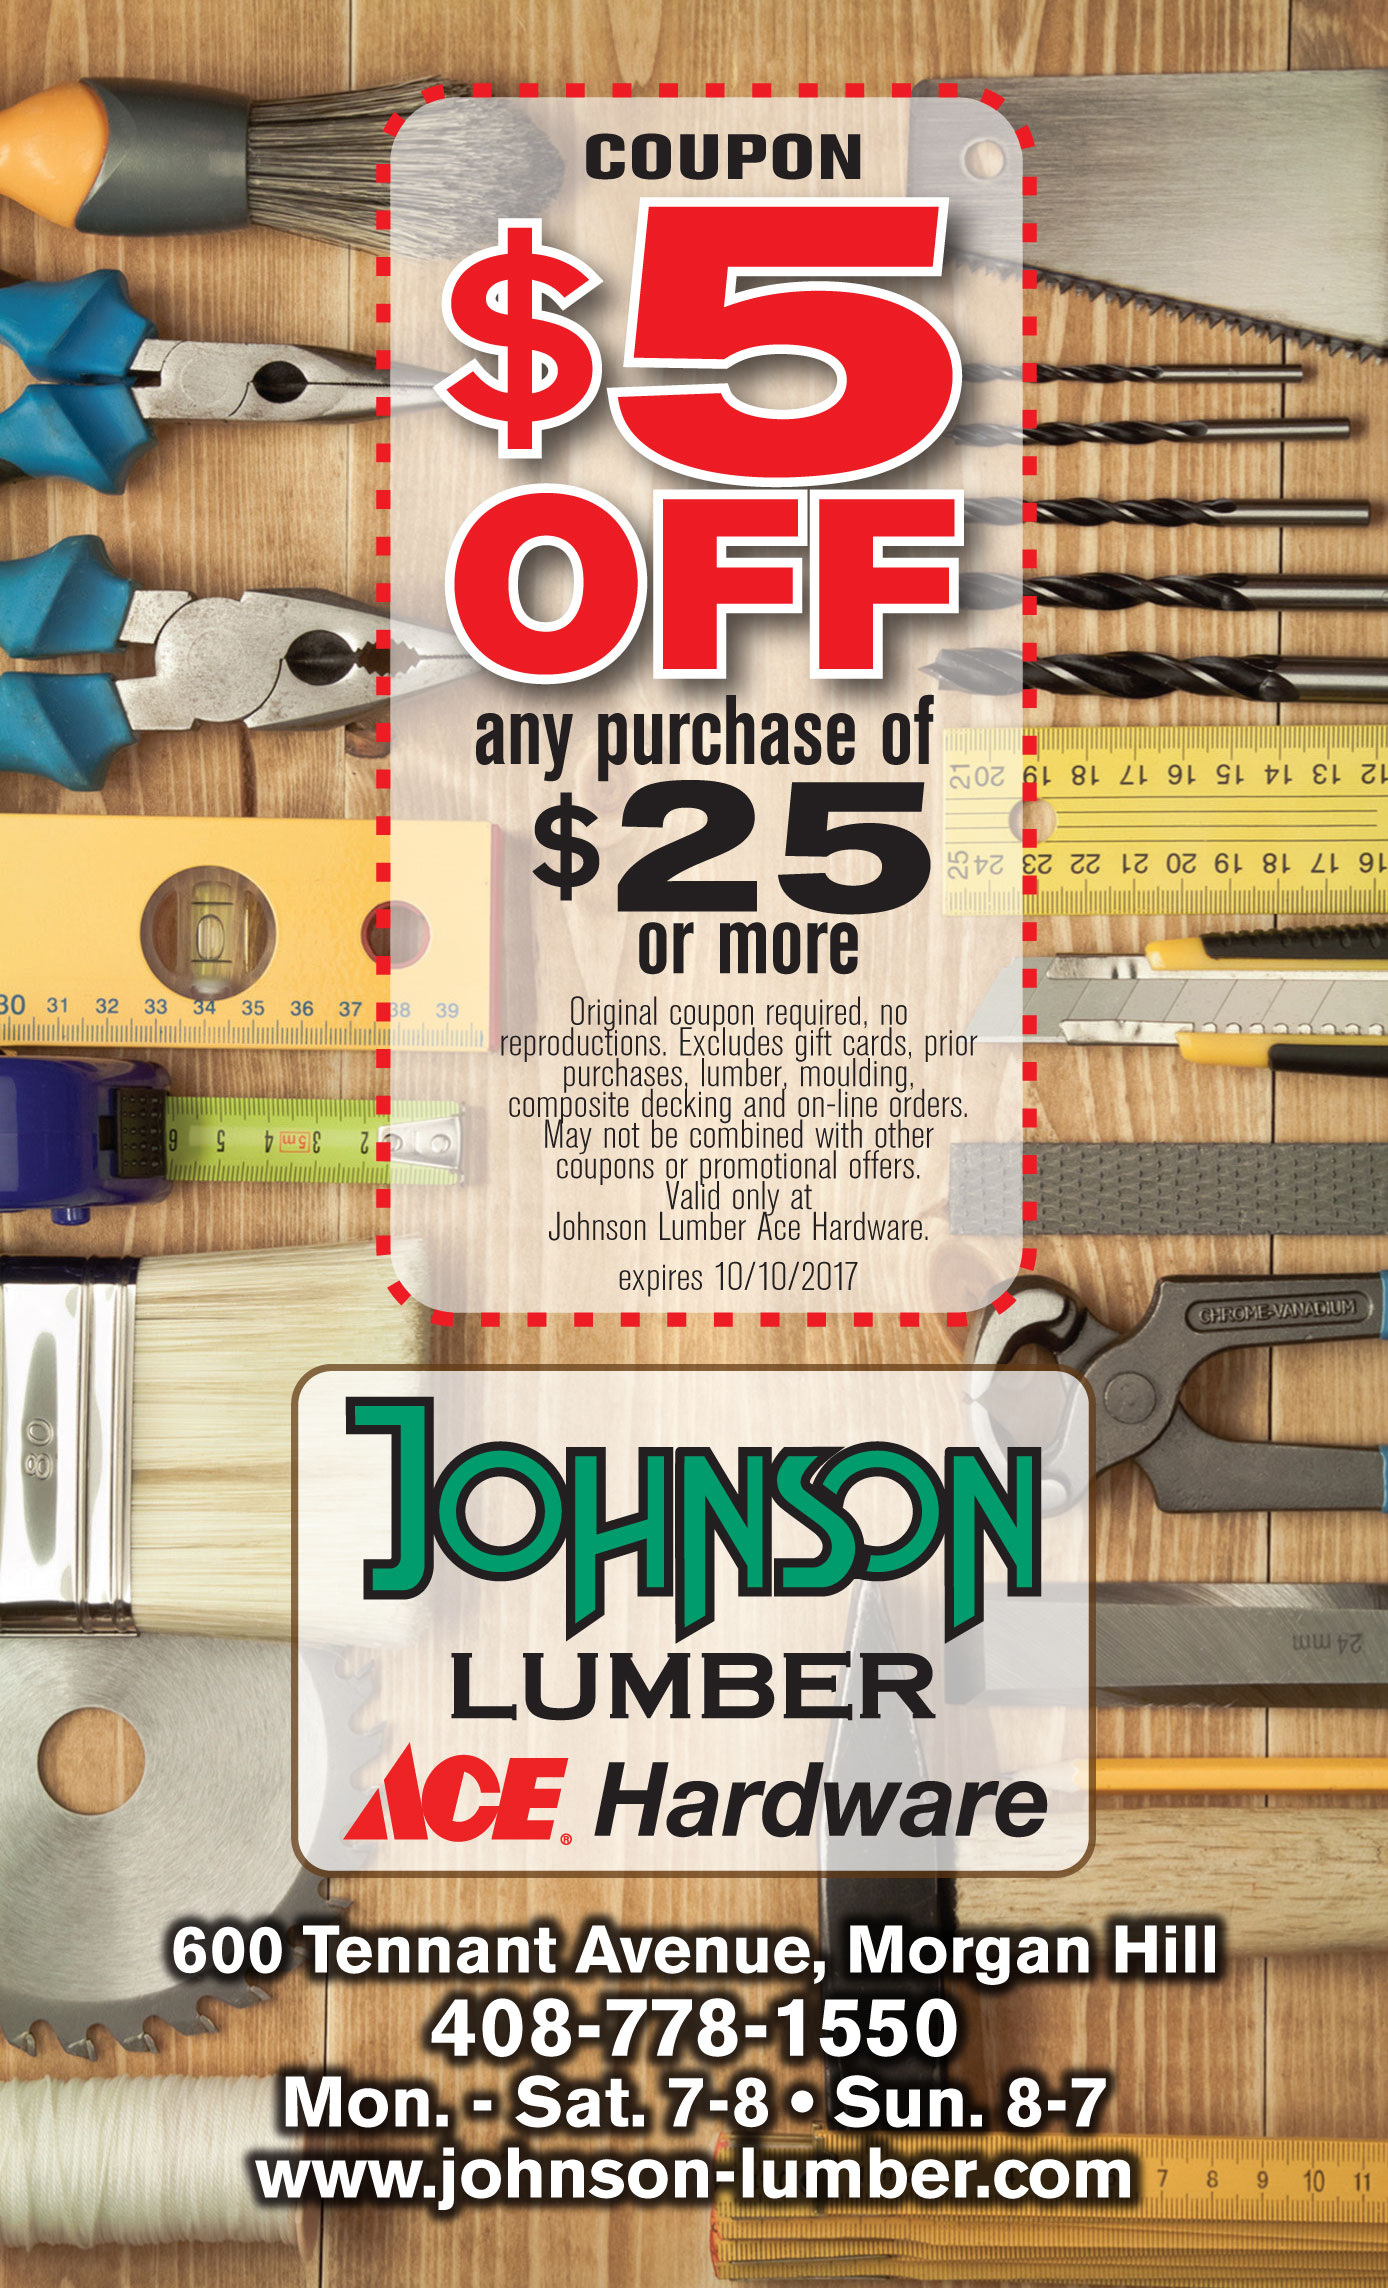 hight resolution of johnson lumber ace hardware 5 off 25 or more coupon